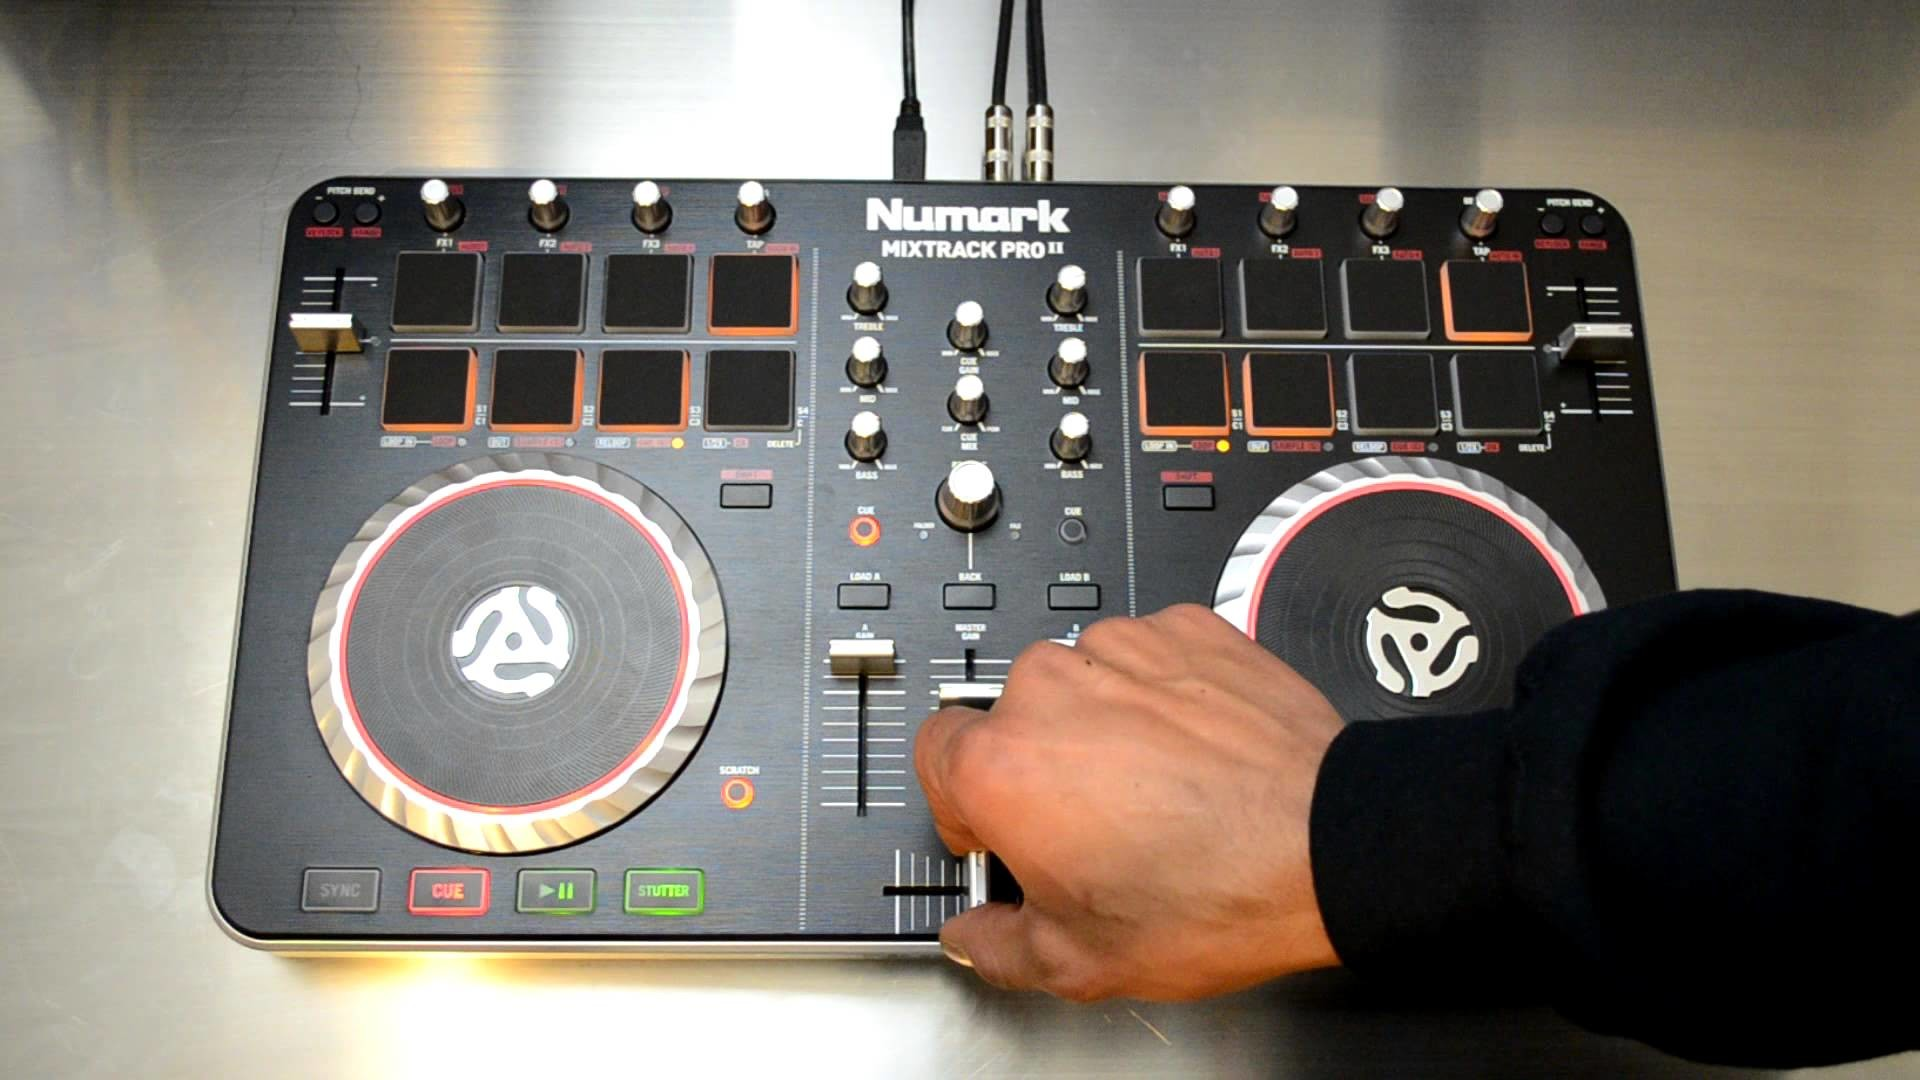 Dj Controller Hd Wallpapers 59 Background Pictures